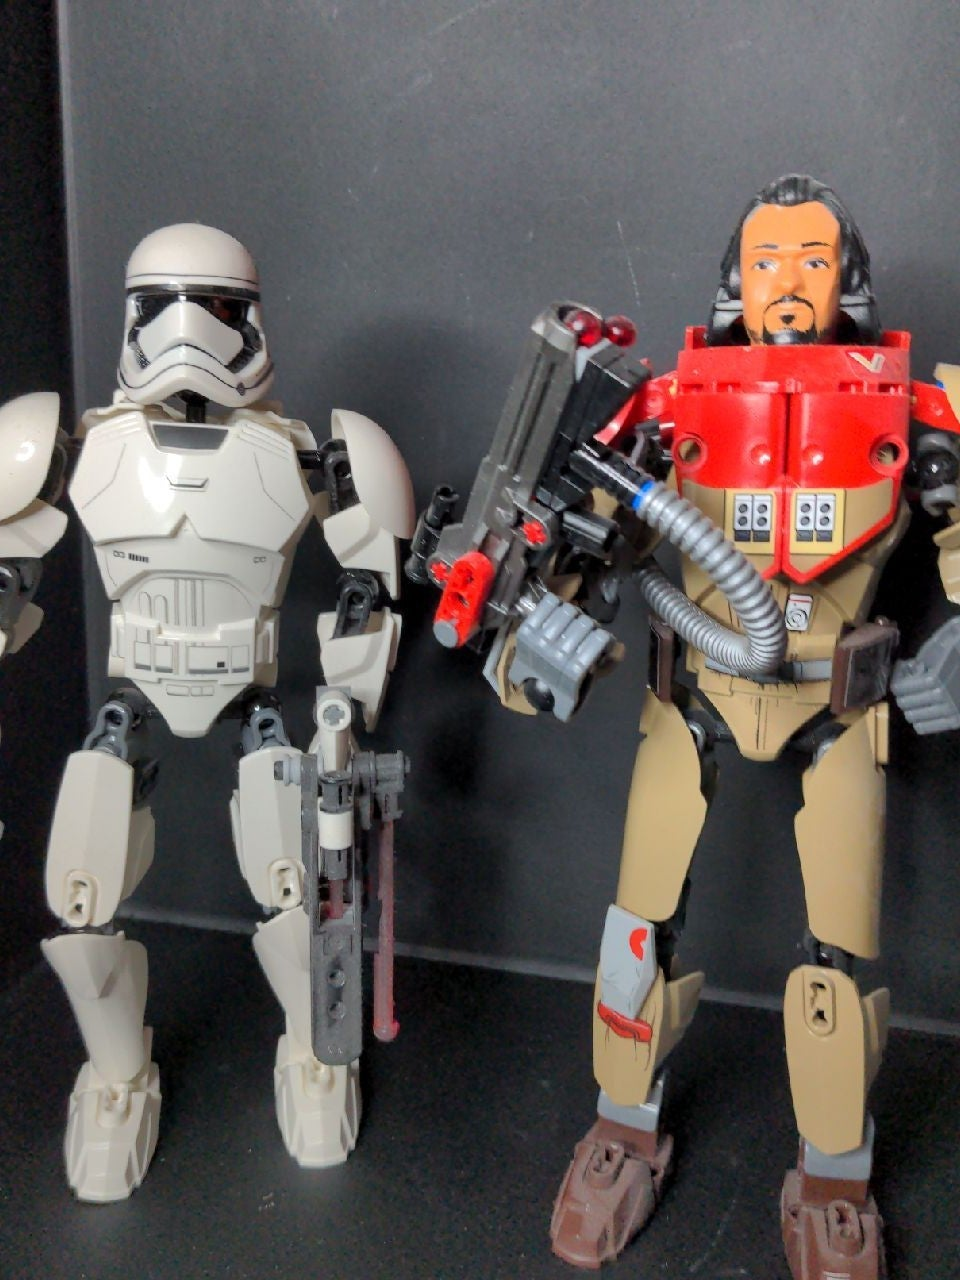 Star Wars lego buildable figures as is